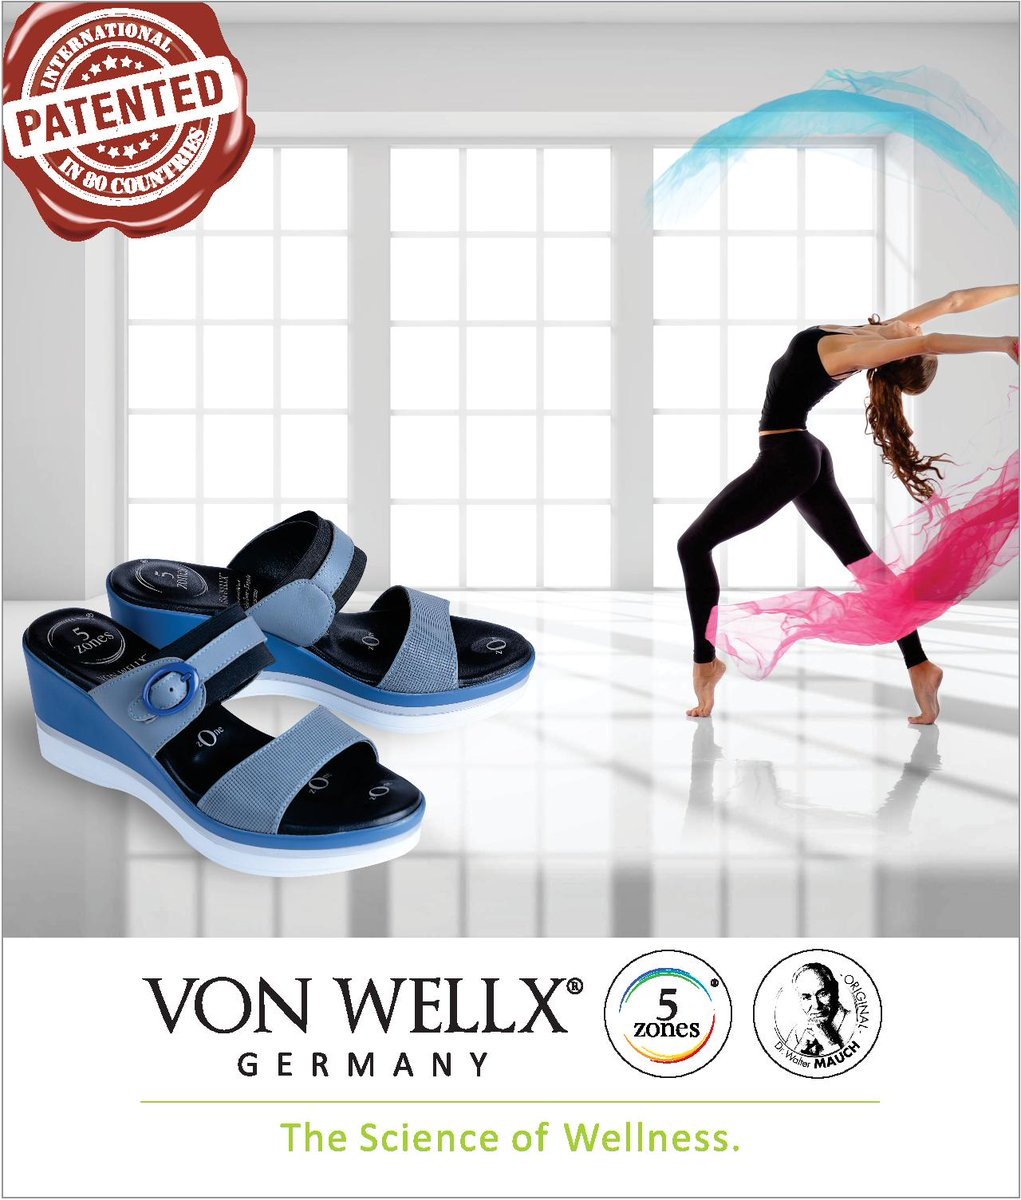 German footwear brand Von Wellx to shift manufacturing from China to India